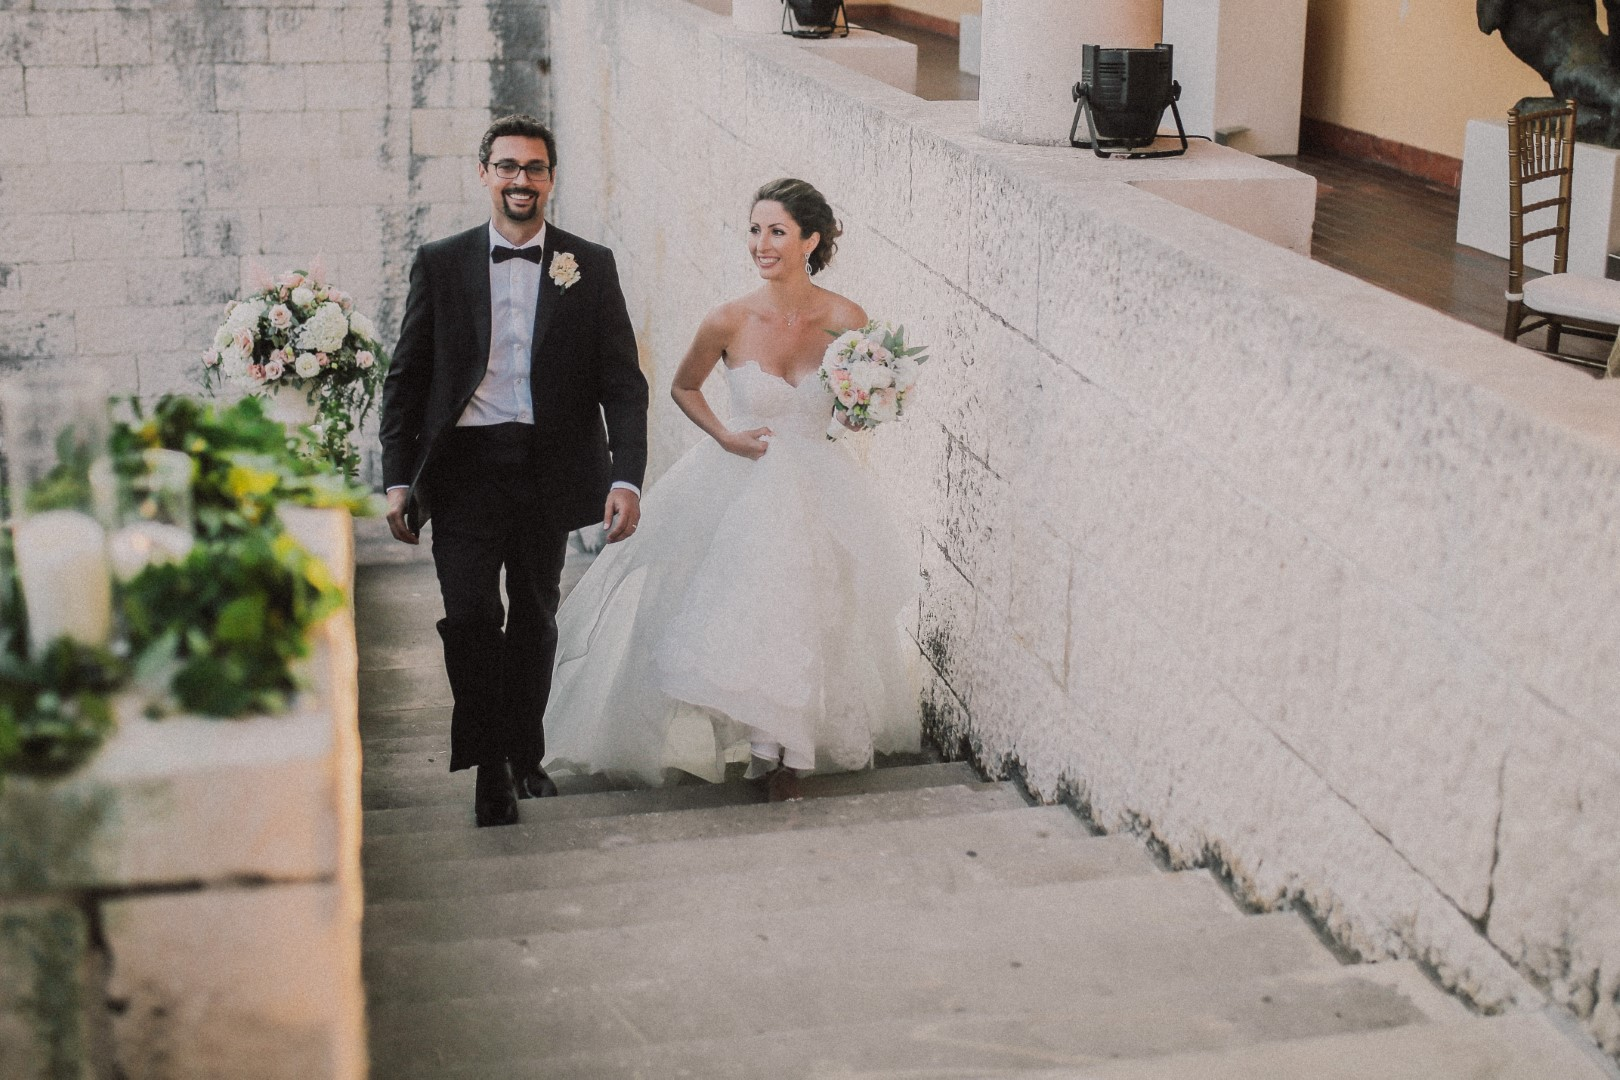 The couple is arriving to their wedding reception at the Dubrovnik art gallery. She is holding up her wedding dress and the bouquet in the other hand. The groom is laughing. On the stone wall next to the stairs is some greenery with simple white candles.